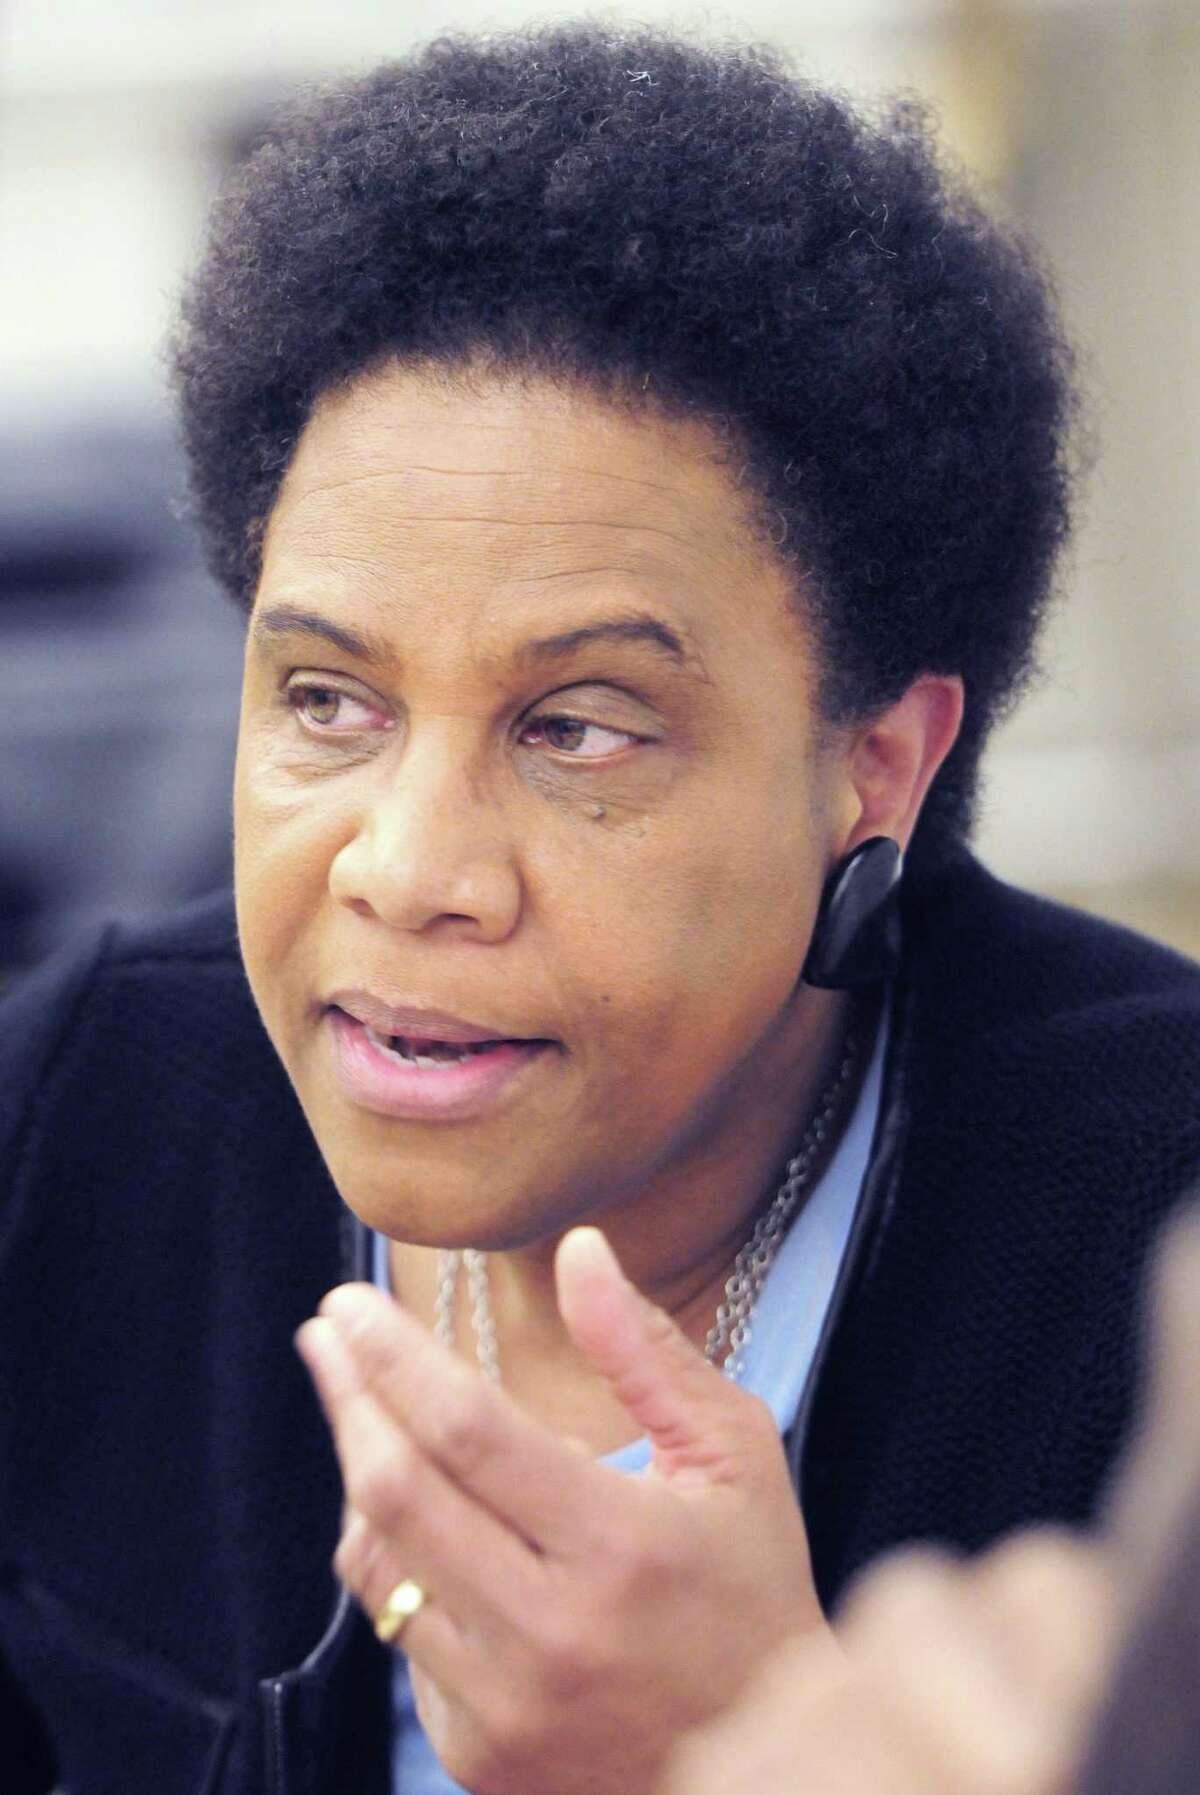 """Enola Aird during a community conversation on """"Emotional Emancipation: The Crucial Unfinished Business of the Civil Rights Movement"""" in 2013 at the Connecticut Center for Arts and Technology in New Haven"""